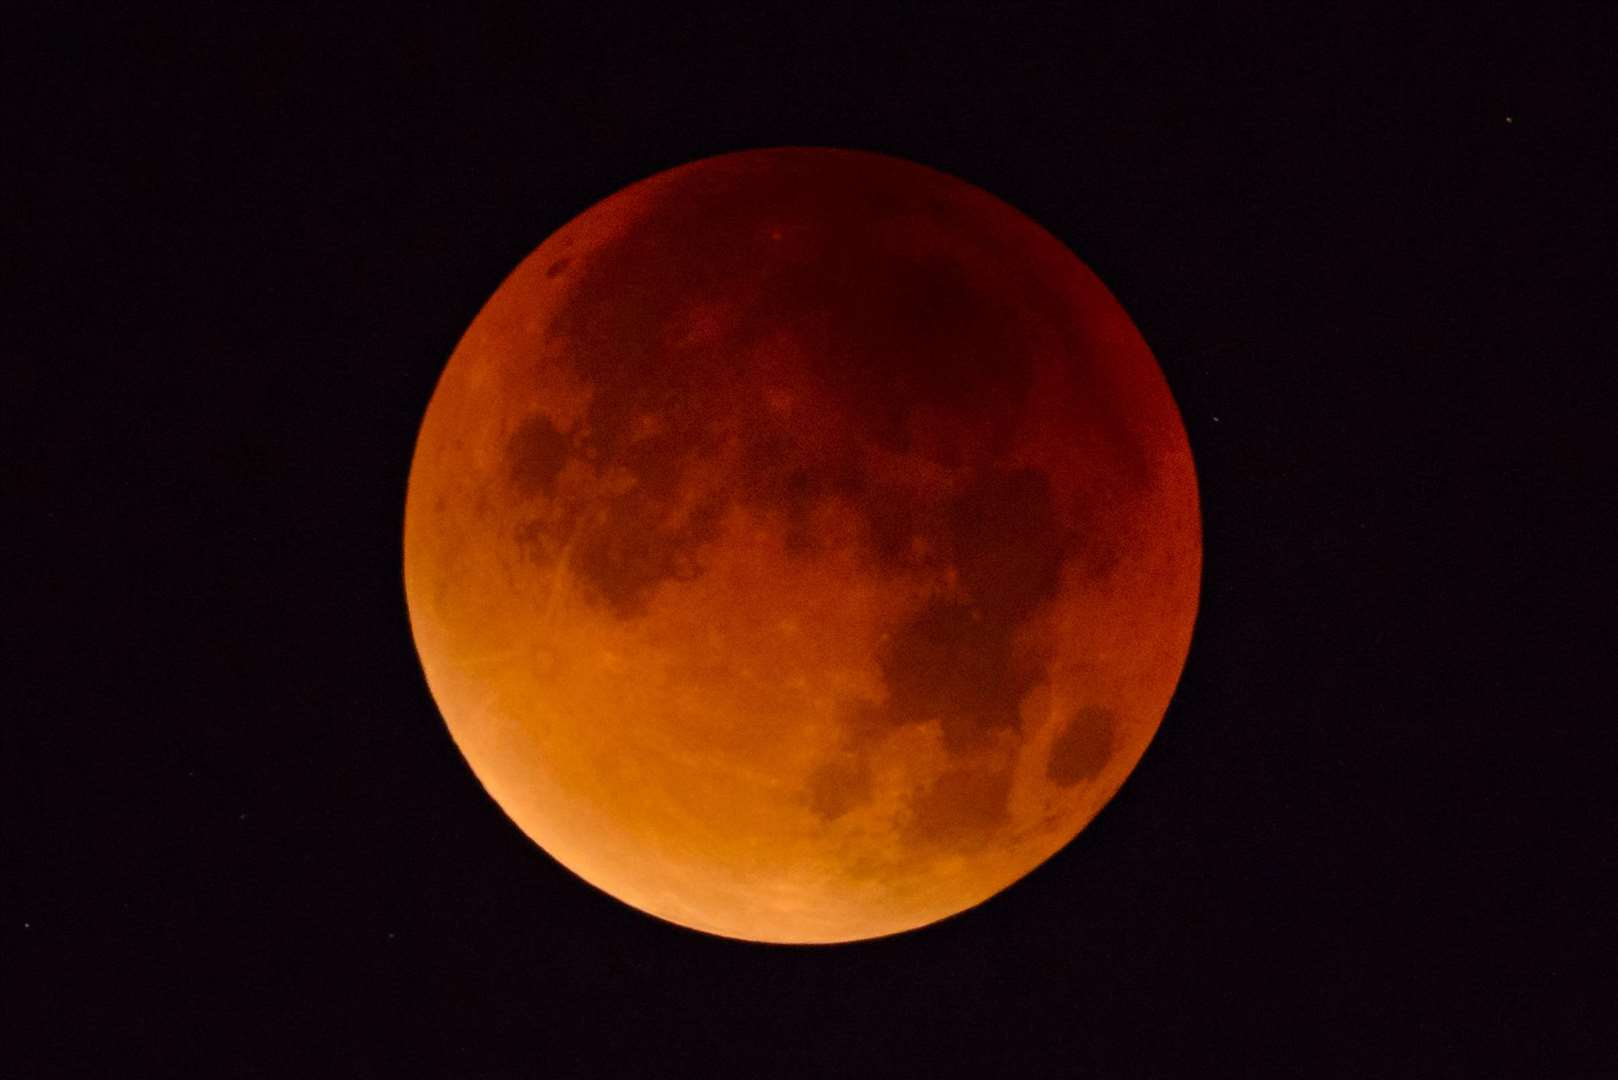 Full lunar eclipse taken from Western Europe on September 28, 2015. A lunar eclipse (also known as a blood moon) occurs when the sun, Earth and moon are aligned and the Moon passes directly behind the Earth into its umbra (shadow). (6625461)